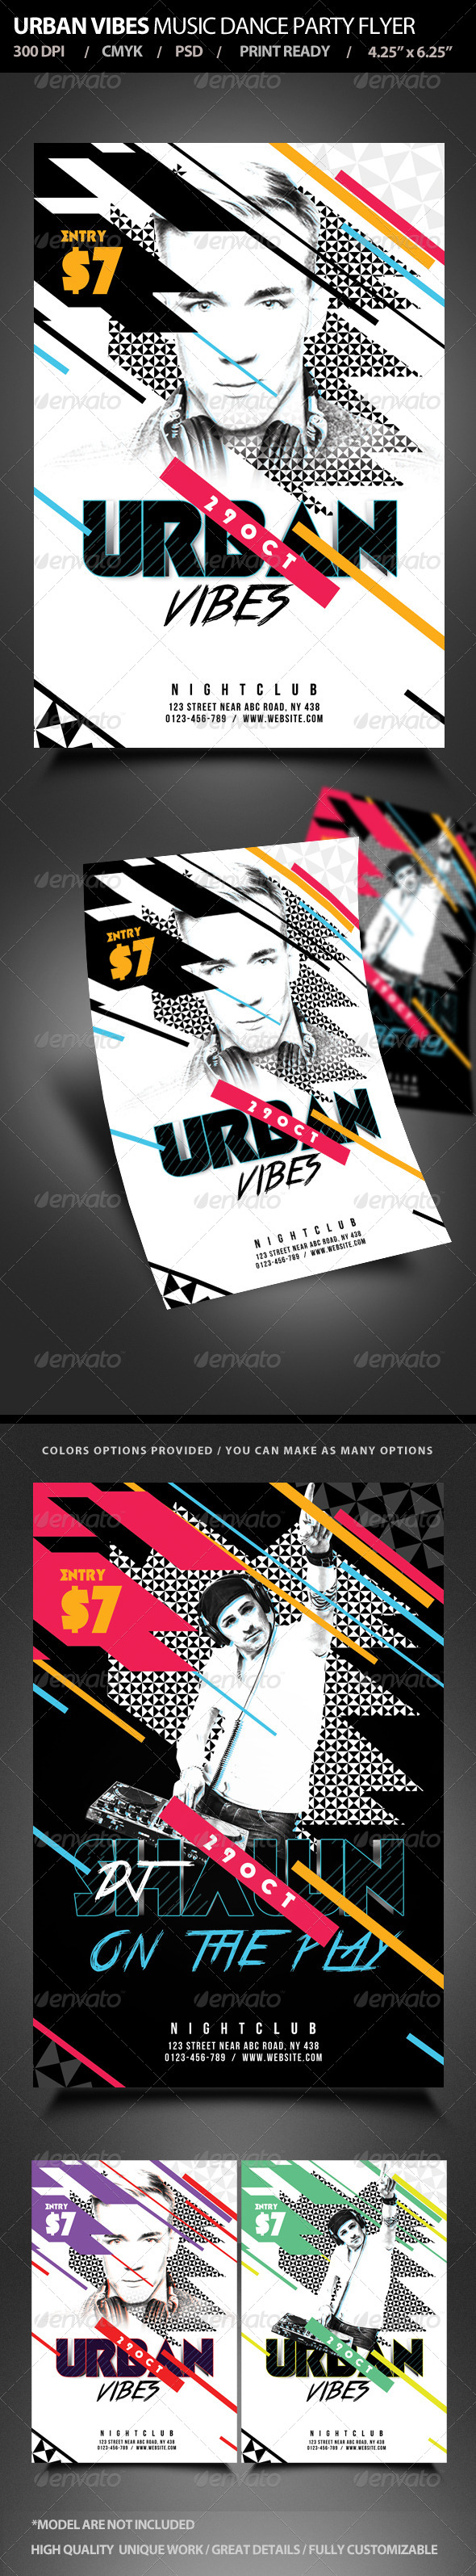 Urban Vibes Music Dance Party Flyer - Clubs & Parties Events